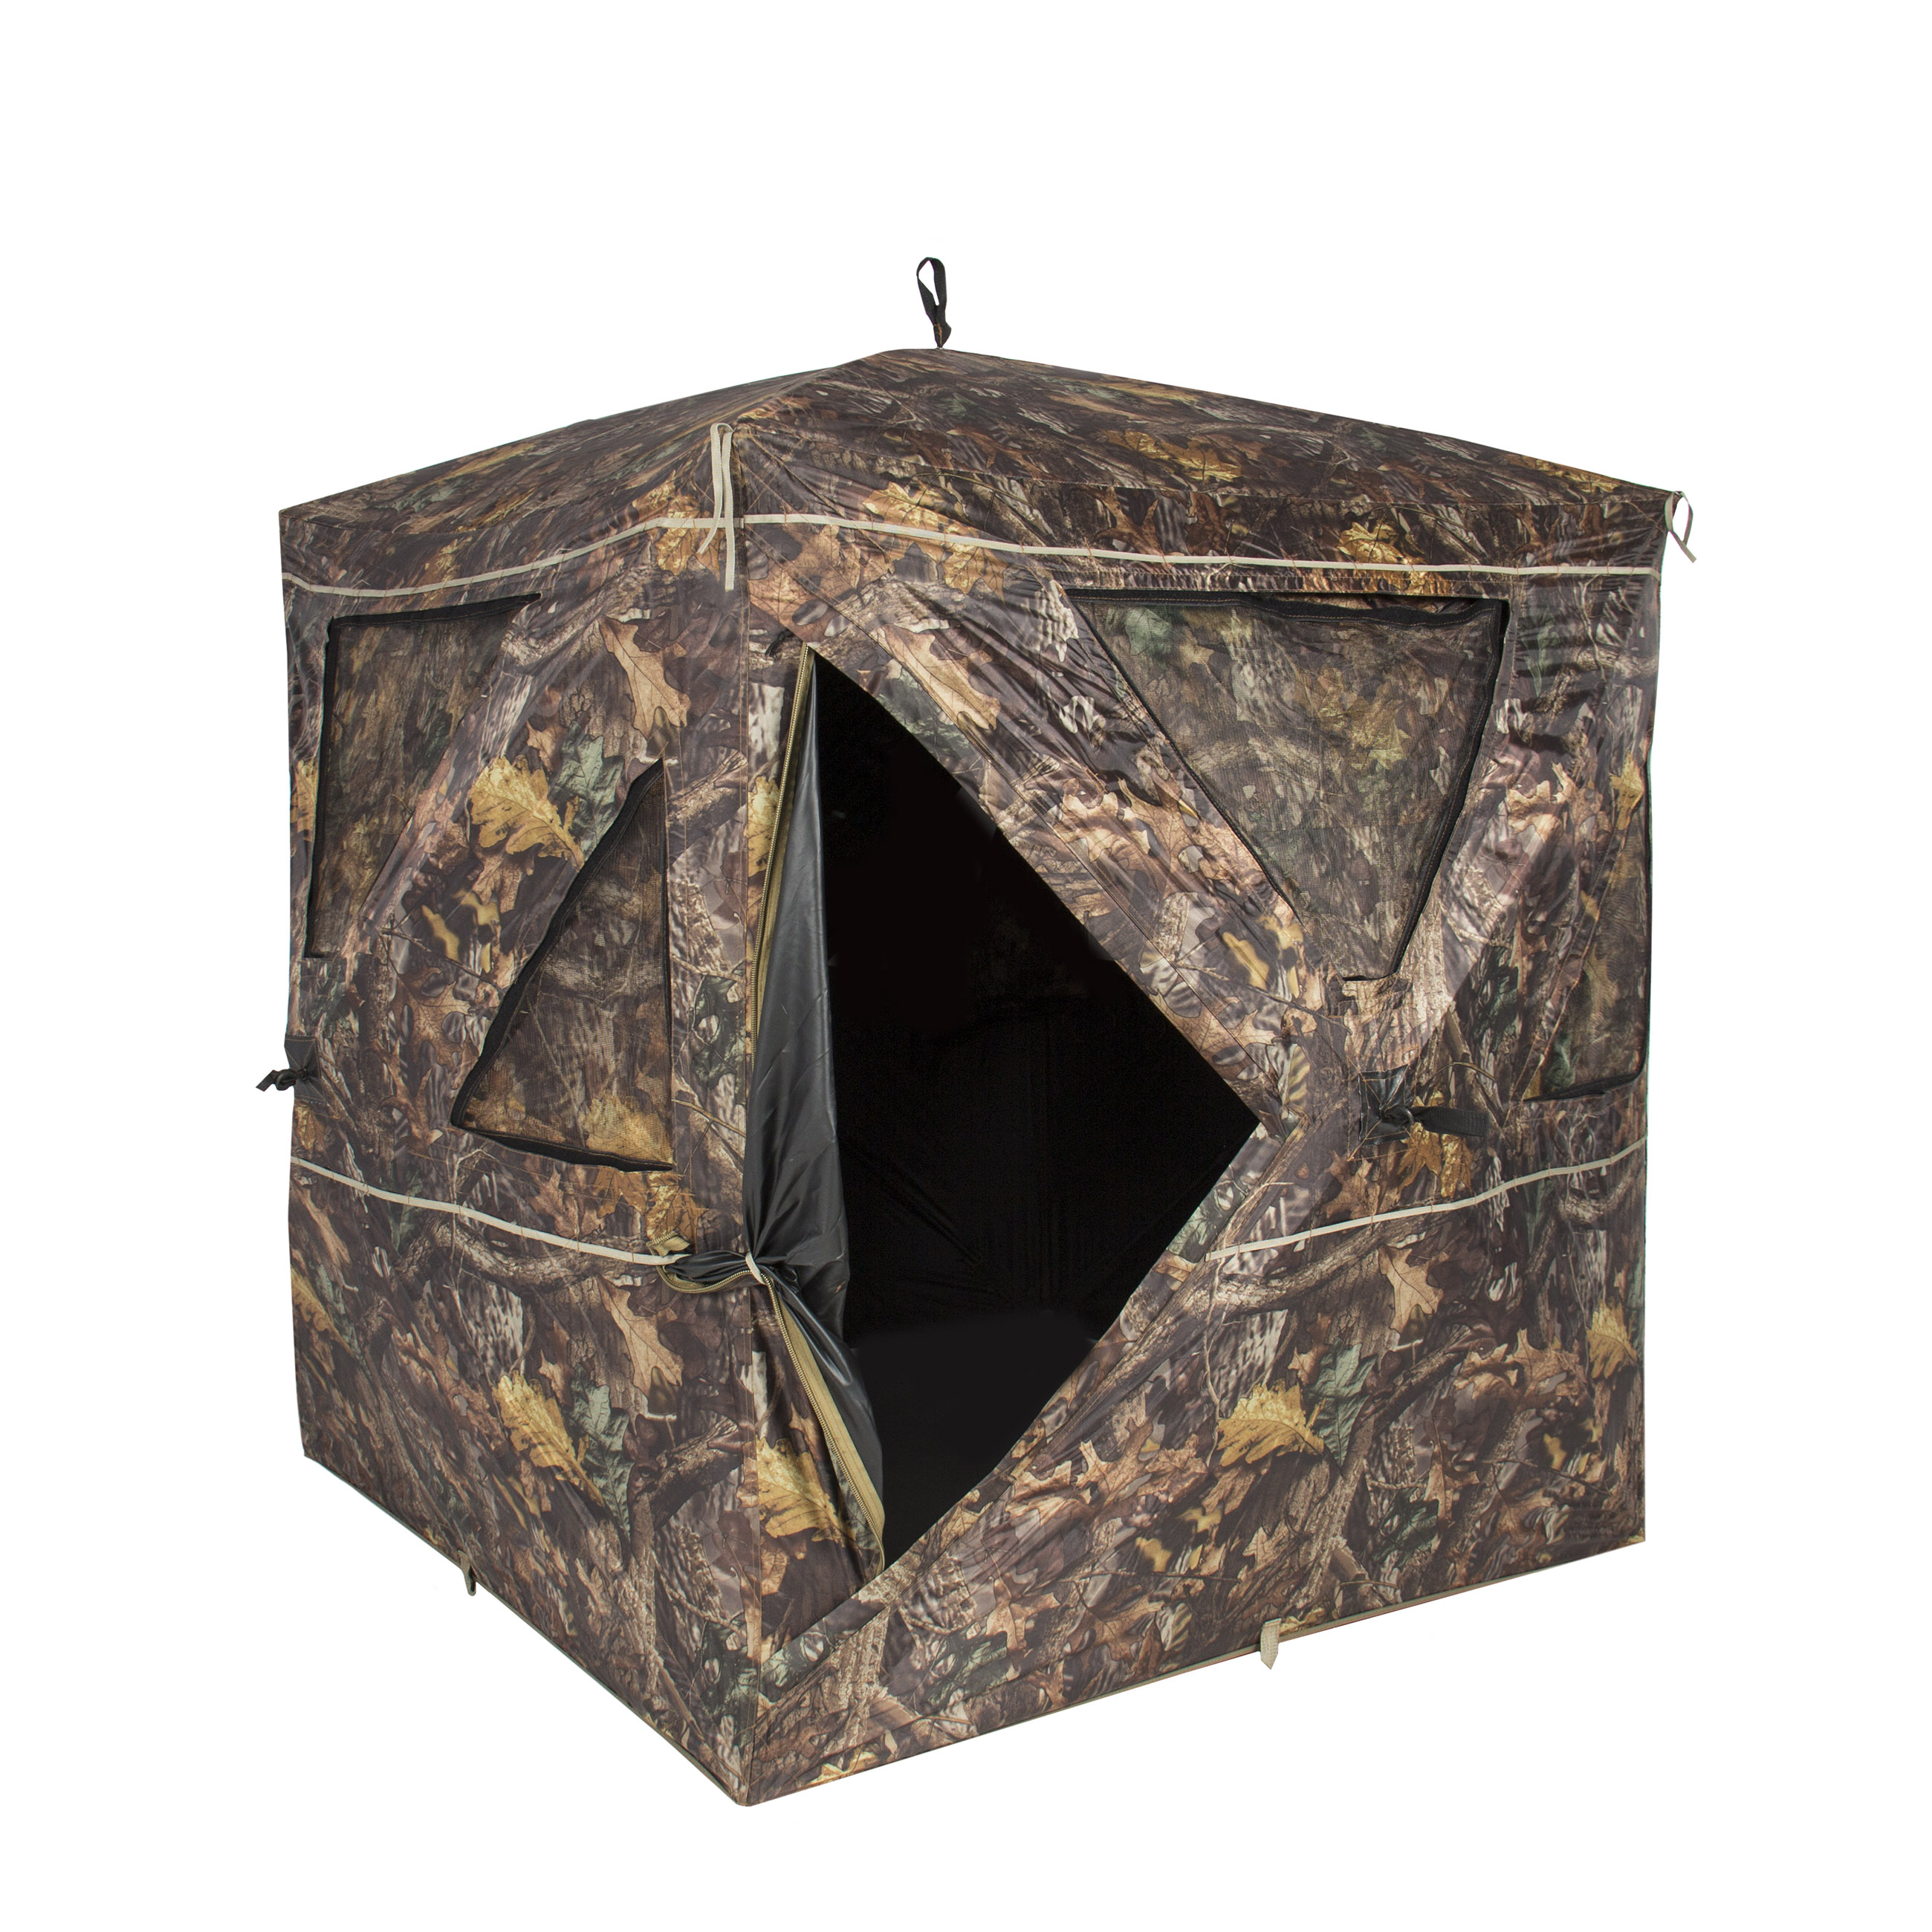 blind tiffany top realtree ameristep enforcer reviews hub turkey blinds xtra person and best lee all crush outdoors hunting